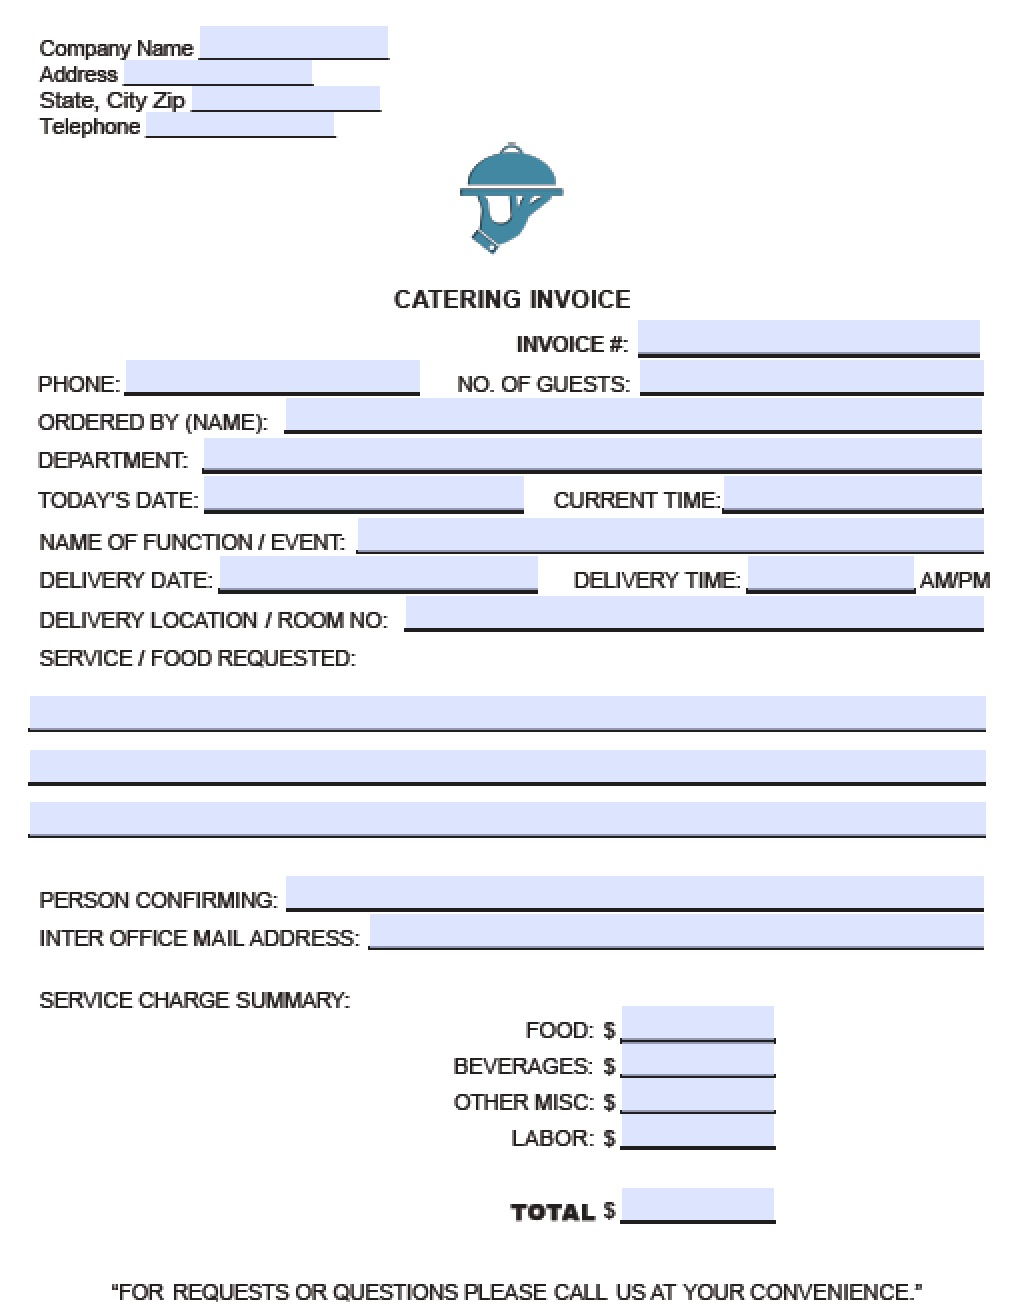 Free Catering Service Invoice Template Excel PDF Word Doc - Invoices template free for service business